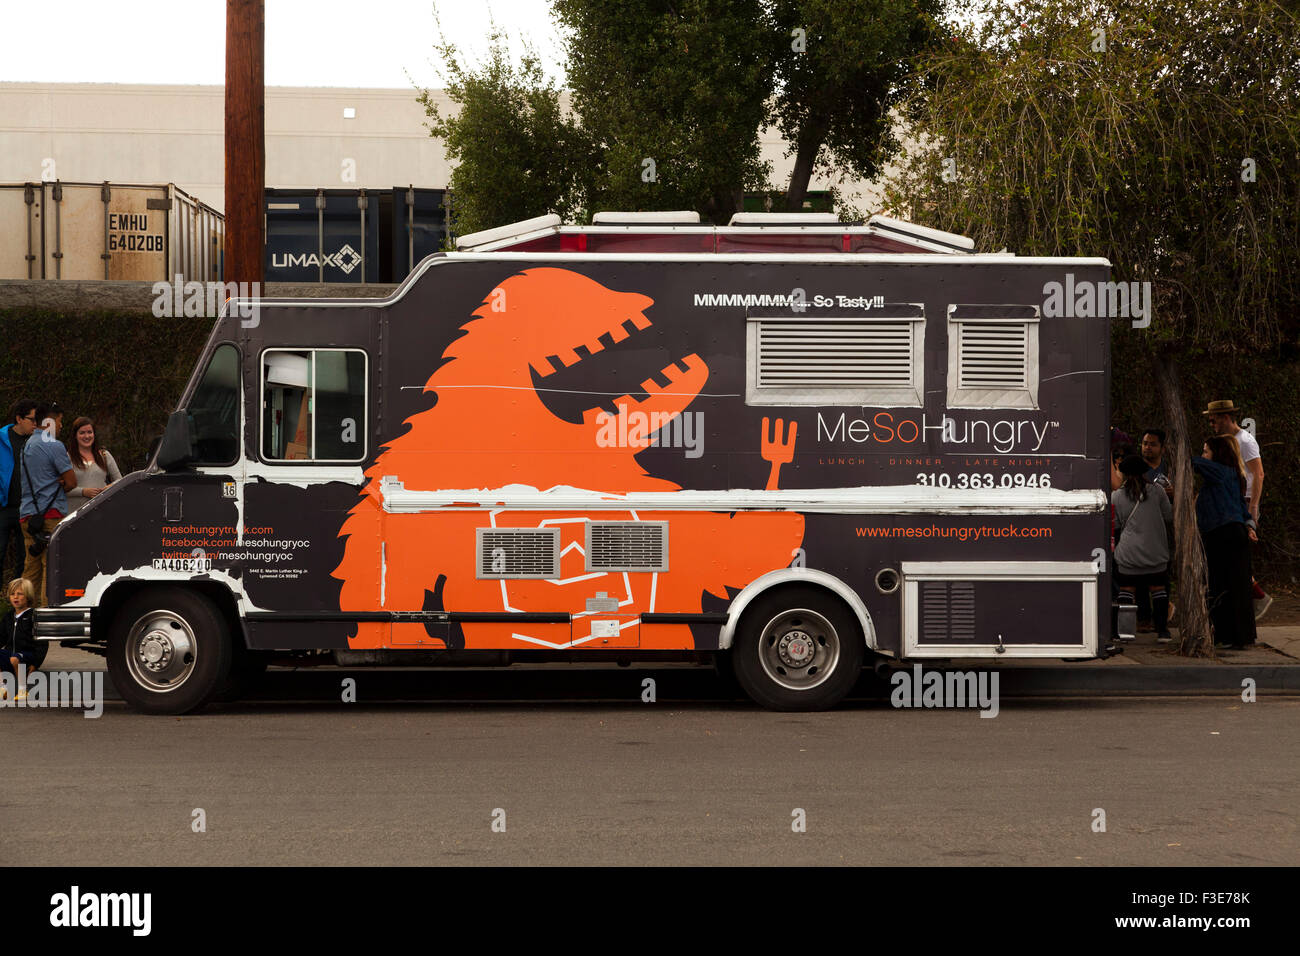 Food Truck, The Brewery Art Walk - October 4, 2015 - Los Angeles, California, USA - Stock Image